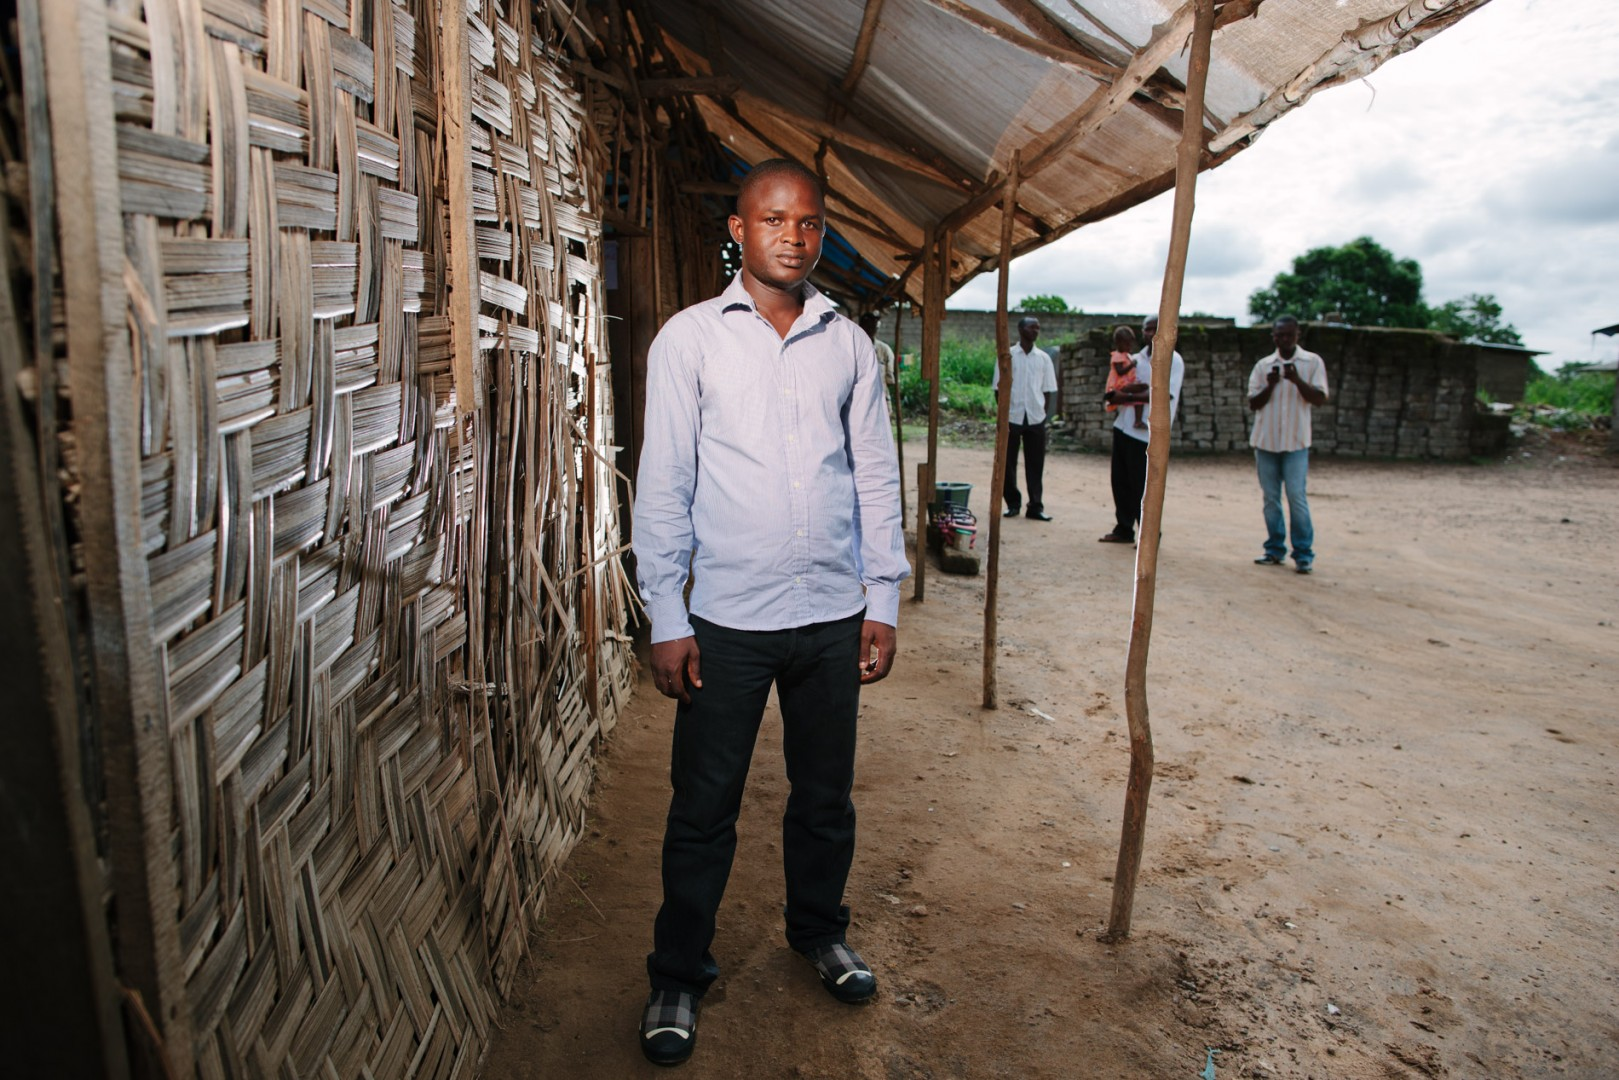 Musa Konneh, Child Support worker for the Swawou School Foundation